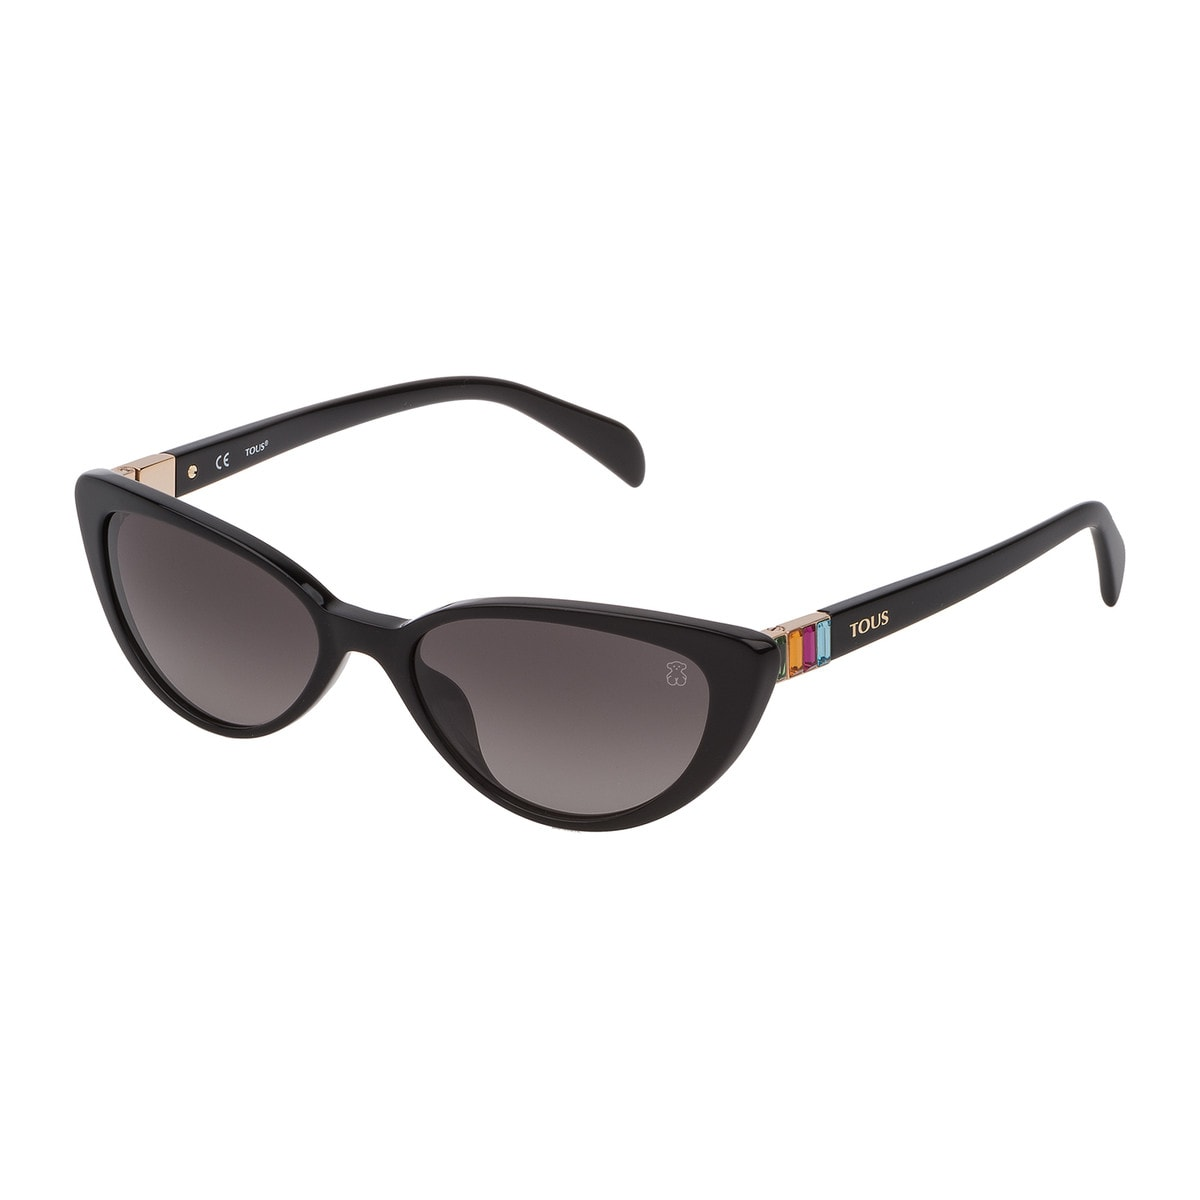 Black Acetate Gems Sunglasses